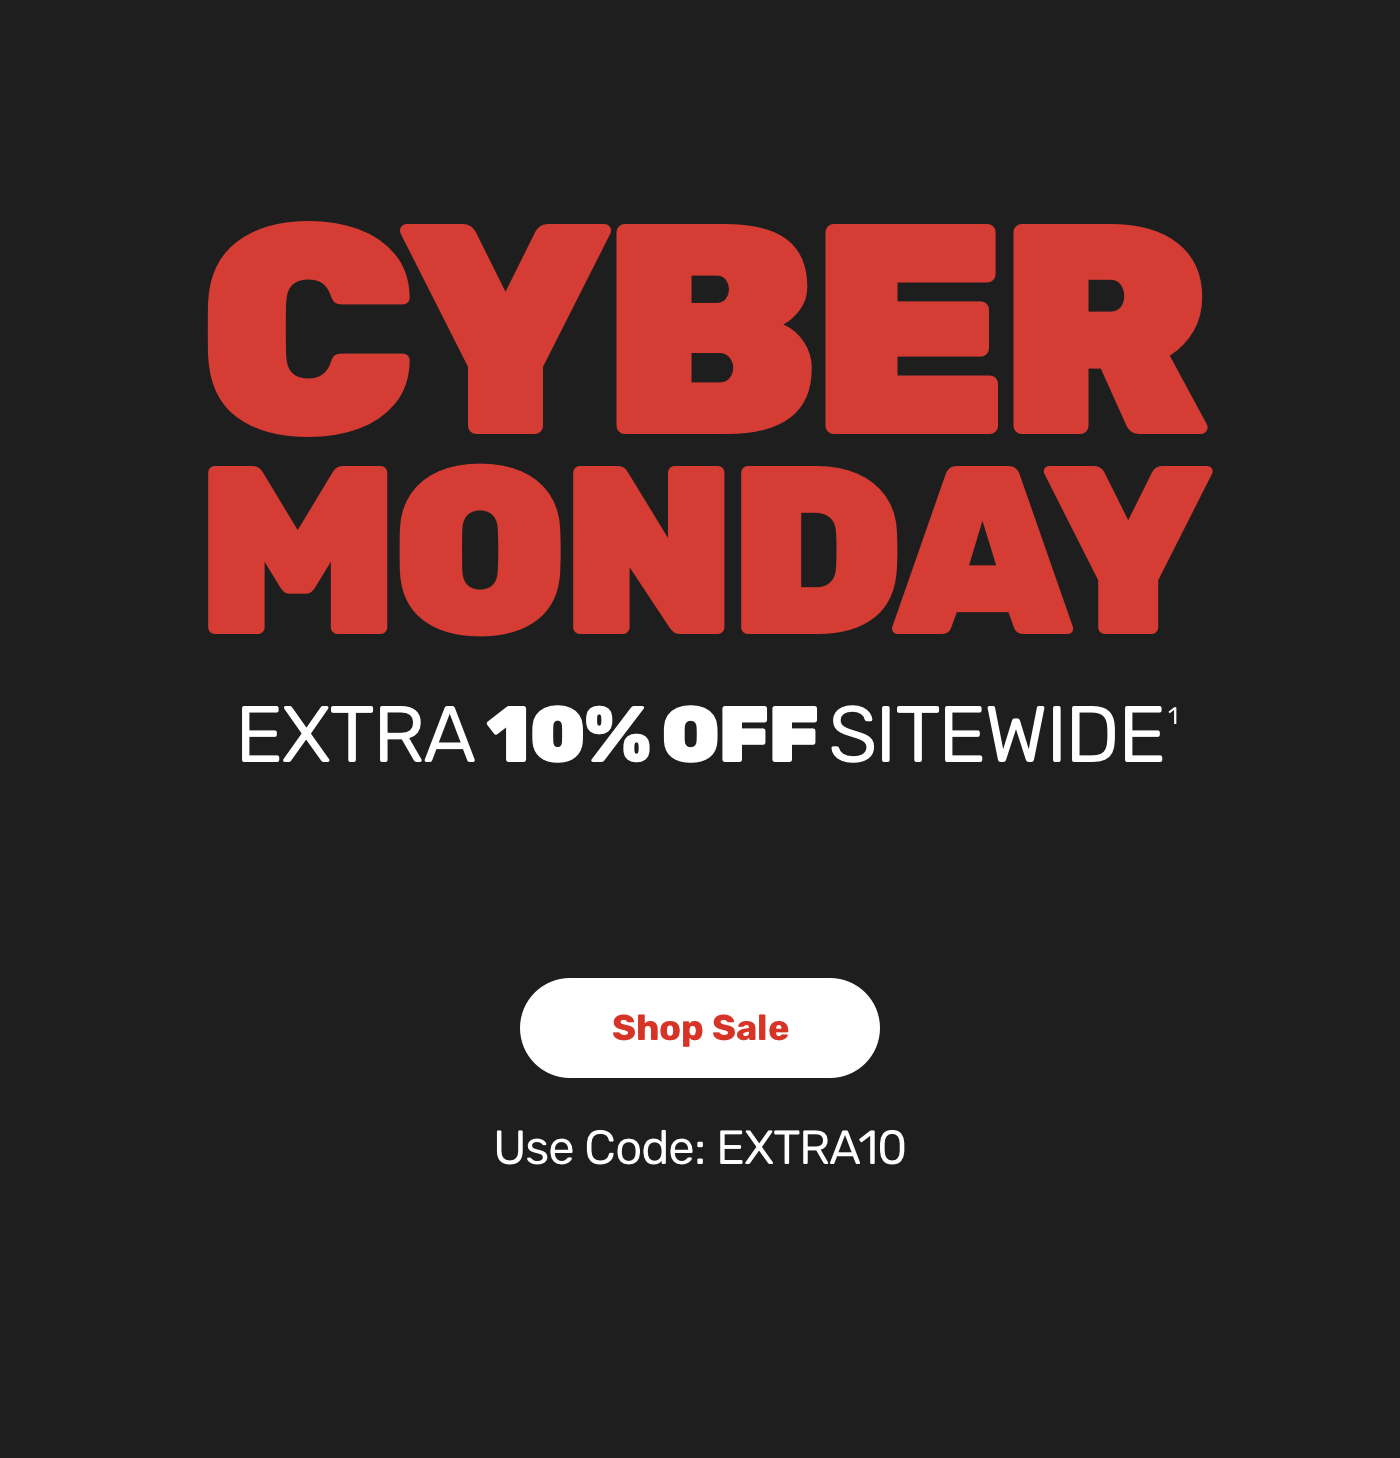 Cyber Monday. Extra 10% Off Sitewide. Shop Sale. Use Code: EXTRA10